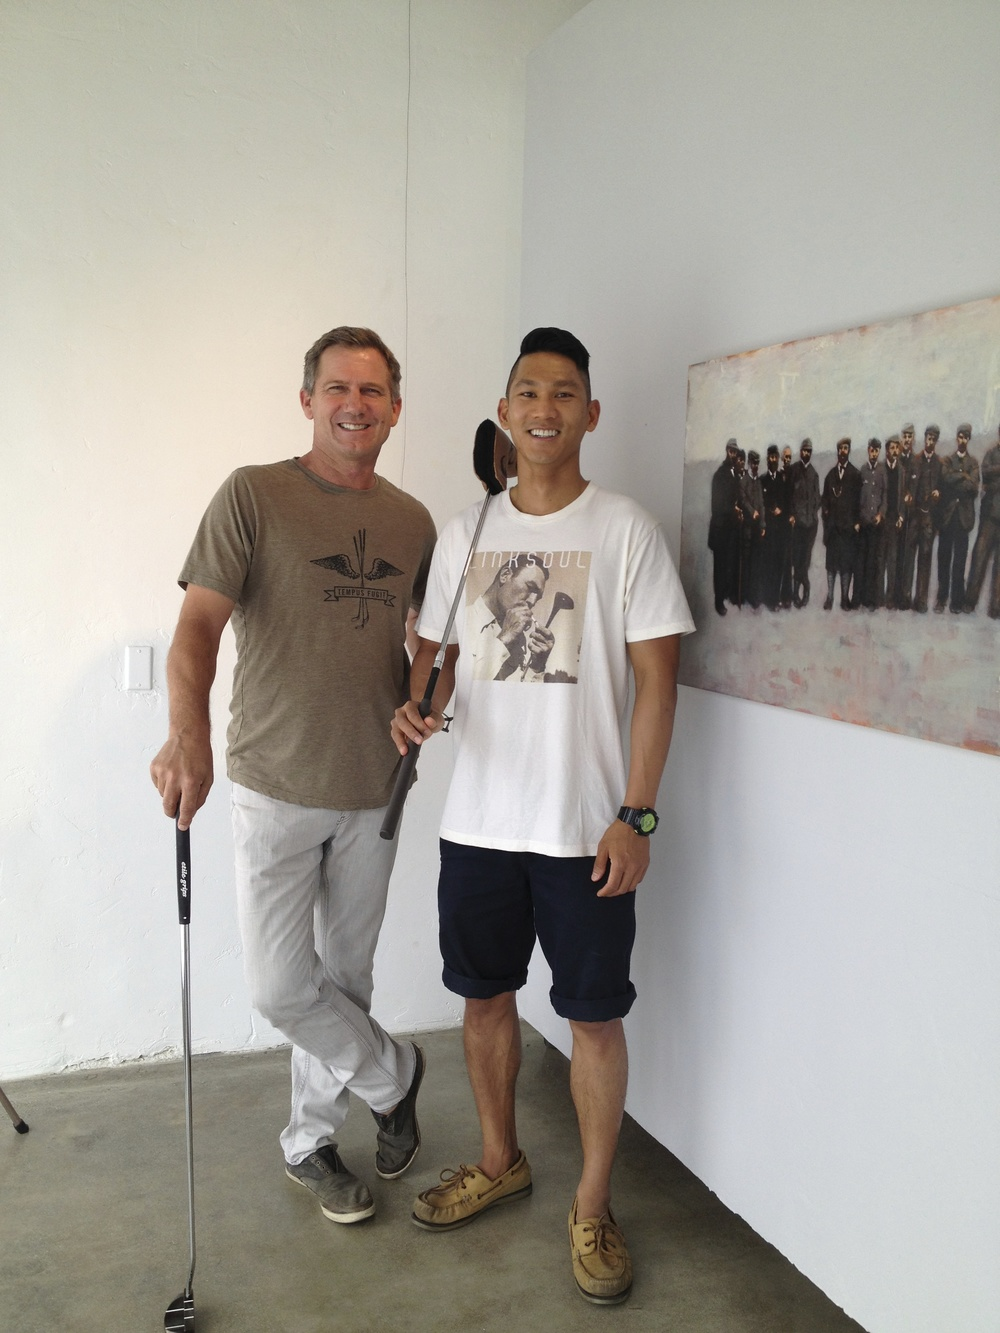 John Ashworth and Phillip Lapuz at Linksoul Lab, Oceanside